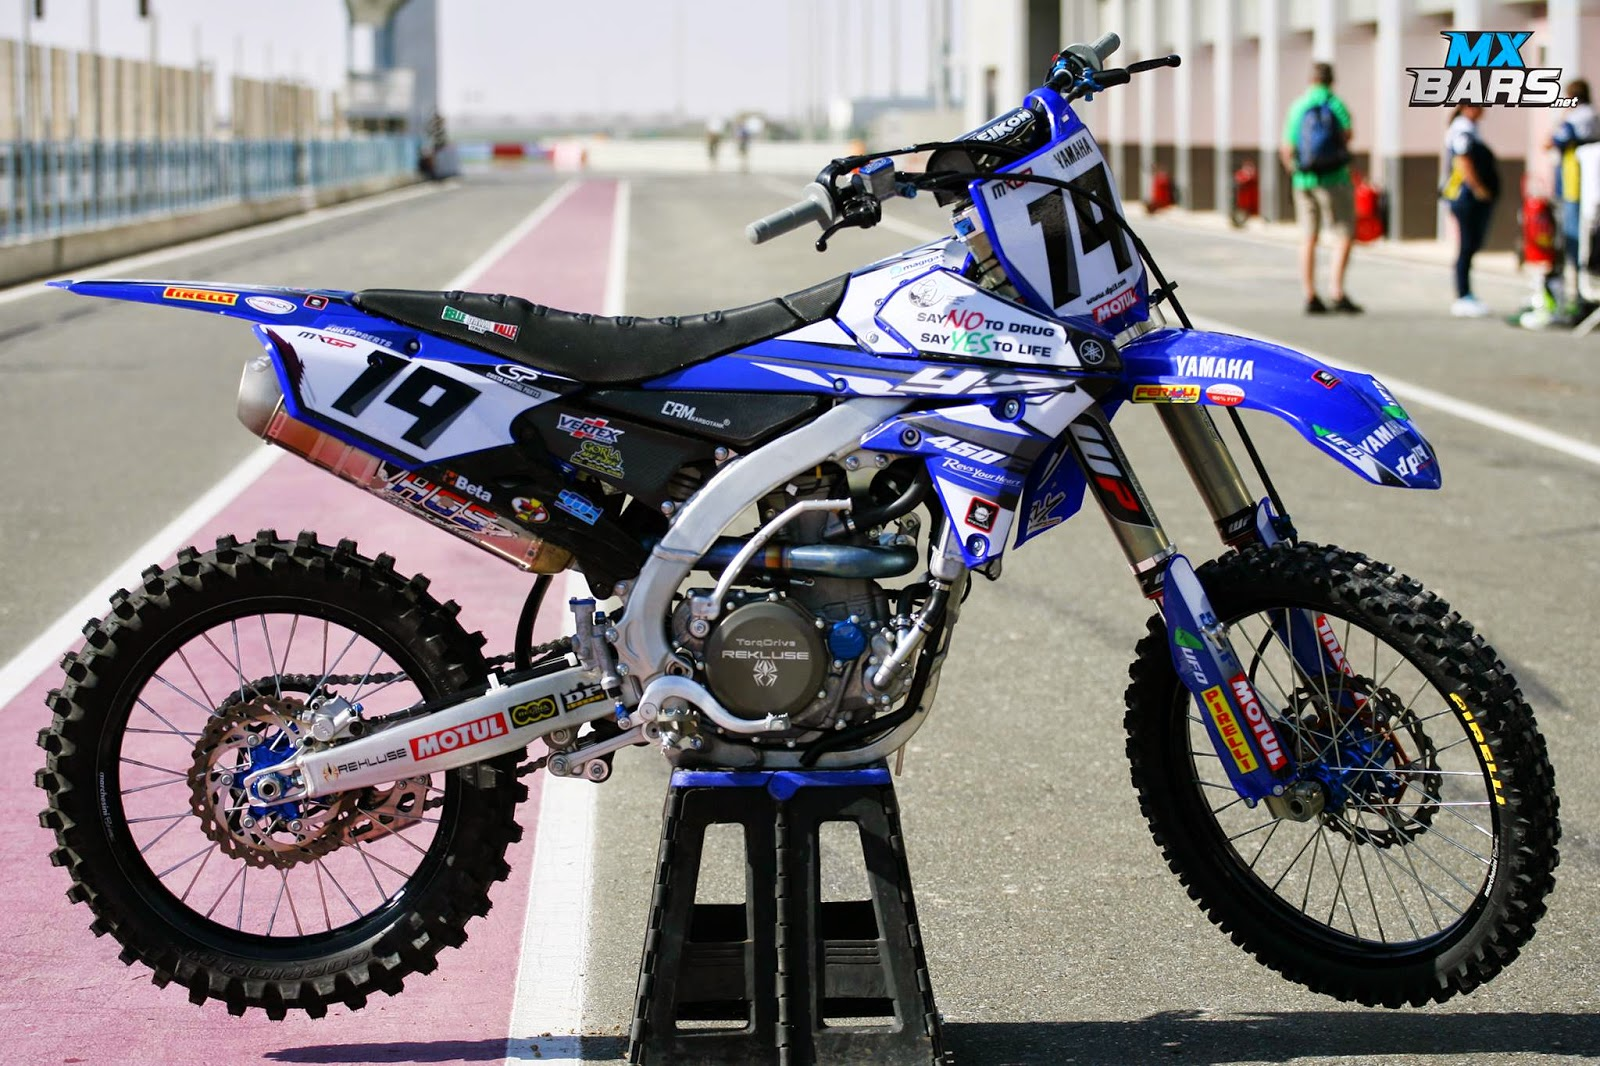 Racing caf yamaha yz 450f team dp19 racing yamaha 2015 for Yamaha racing team